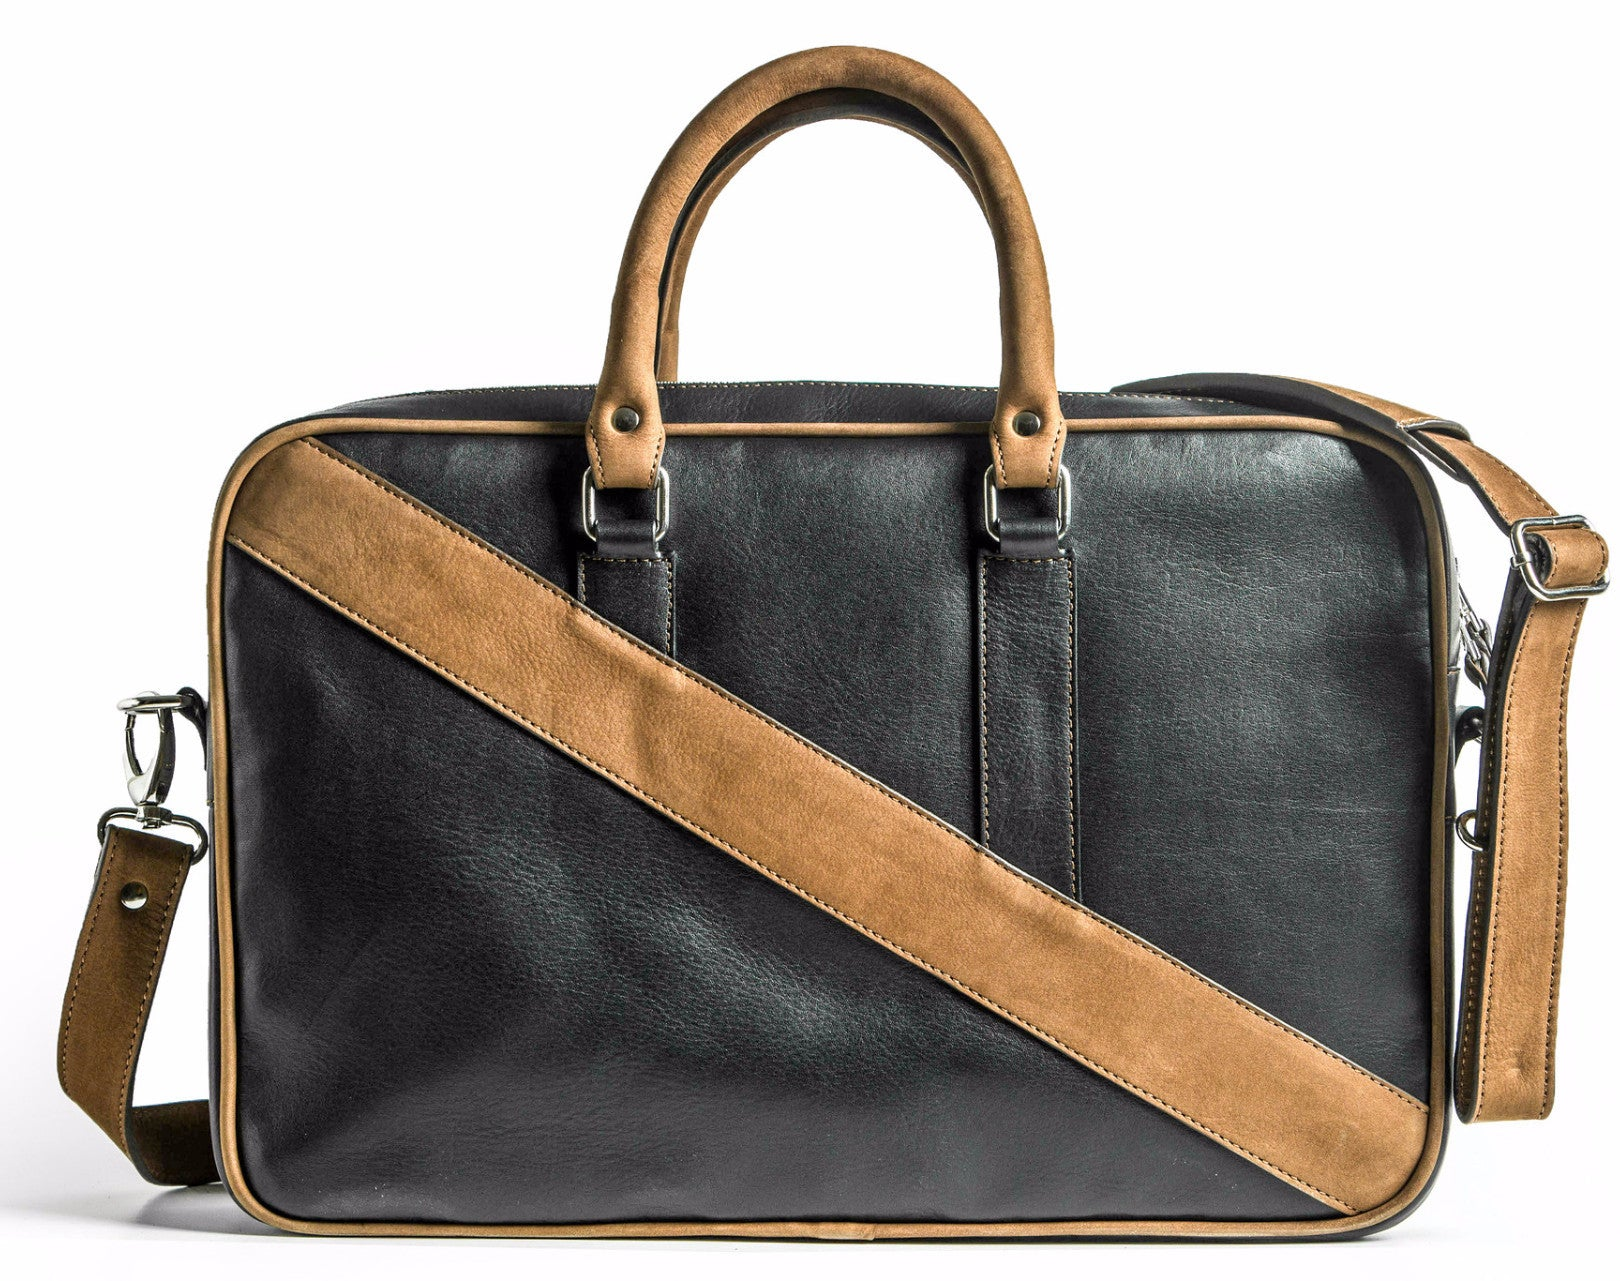 A back view of KANZEK's laptop leather briefcase for men in black and brown with full grain calf leather